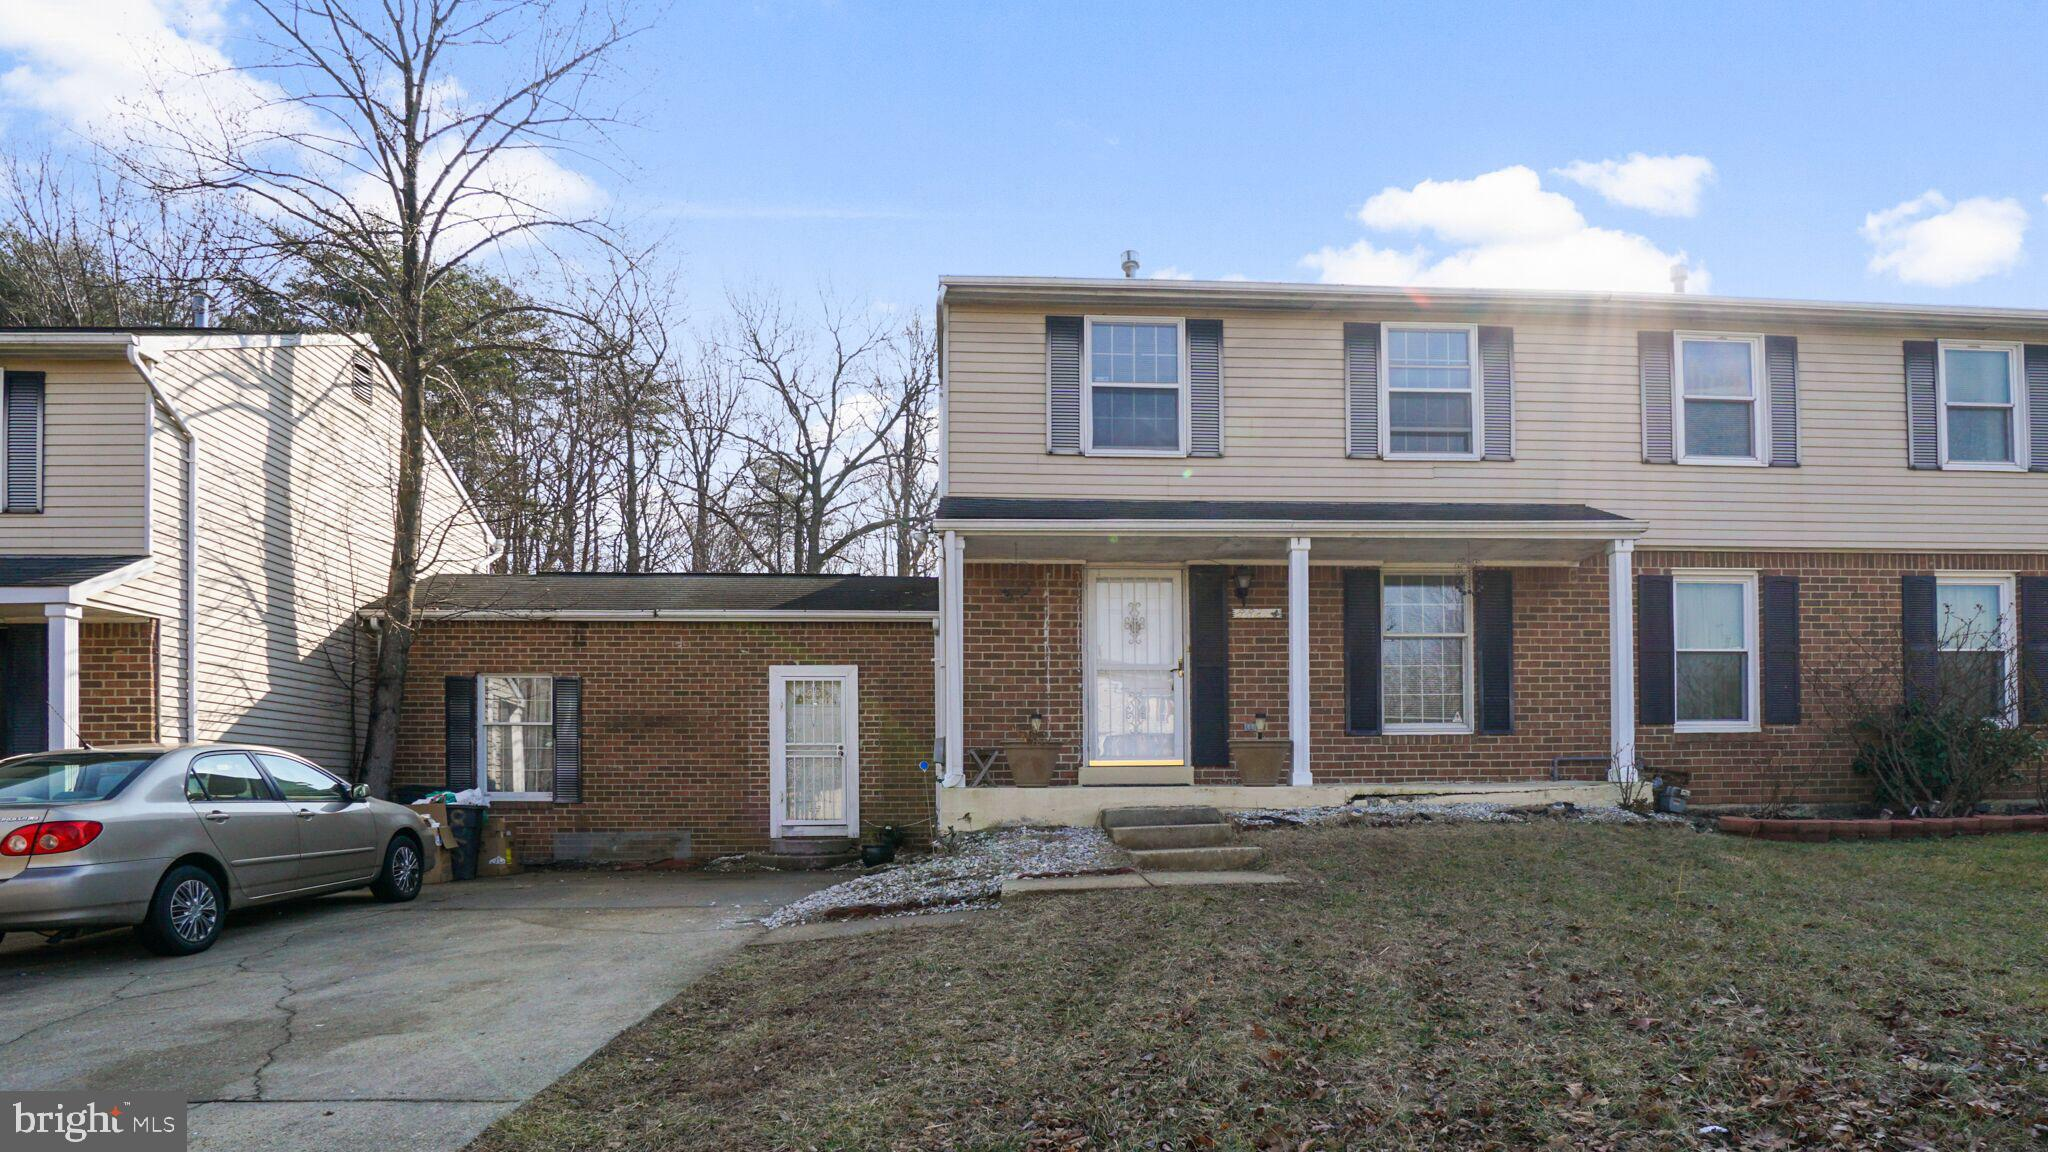 8825 EAST GROVE, UPPER MARLBORO, MD 20774